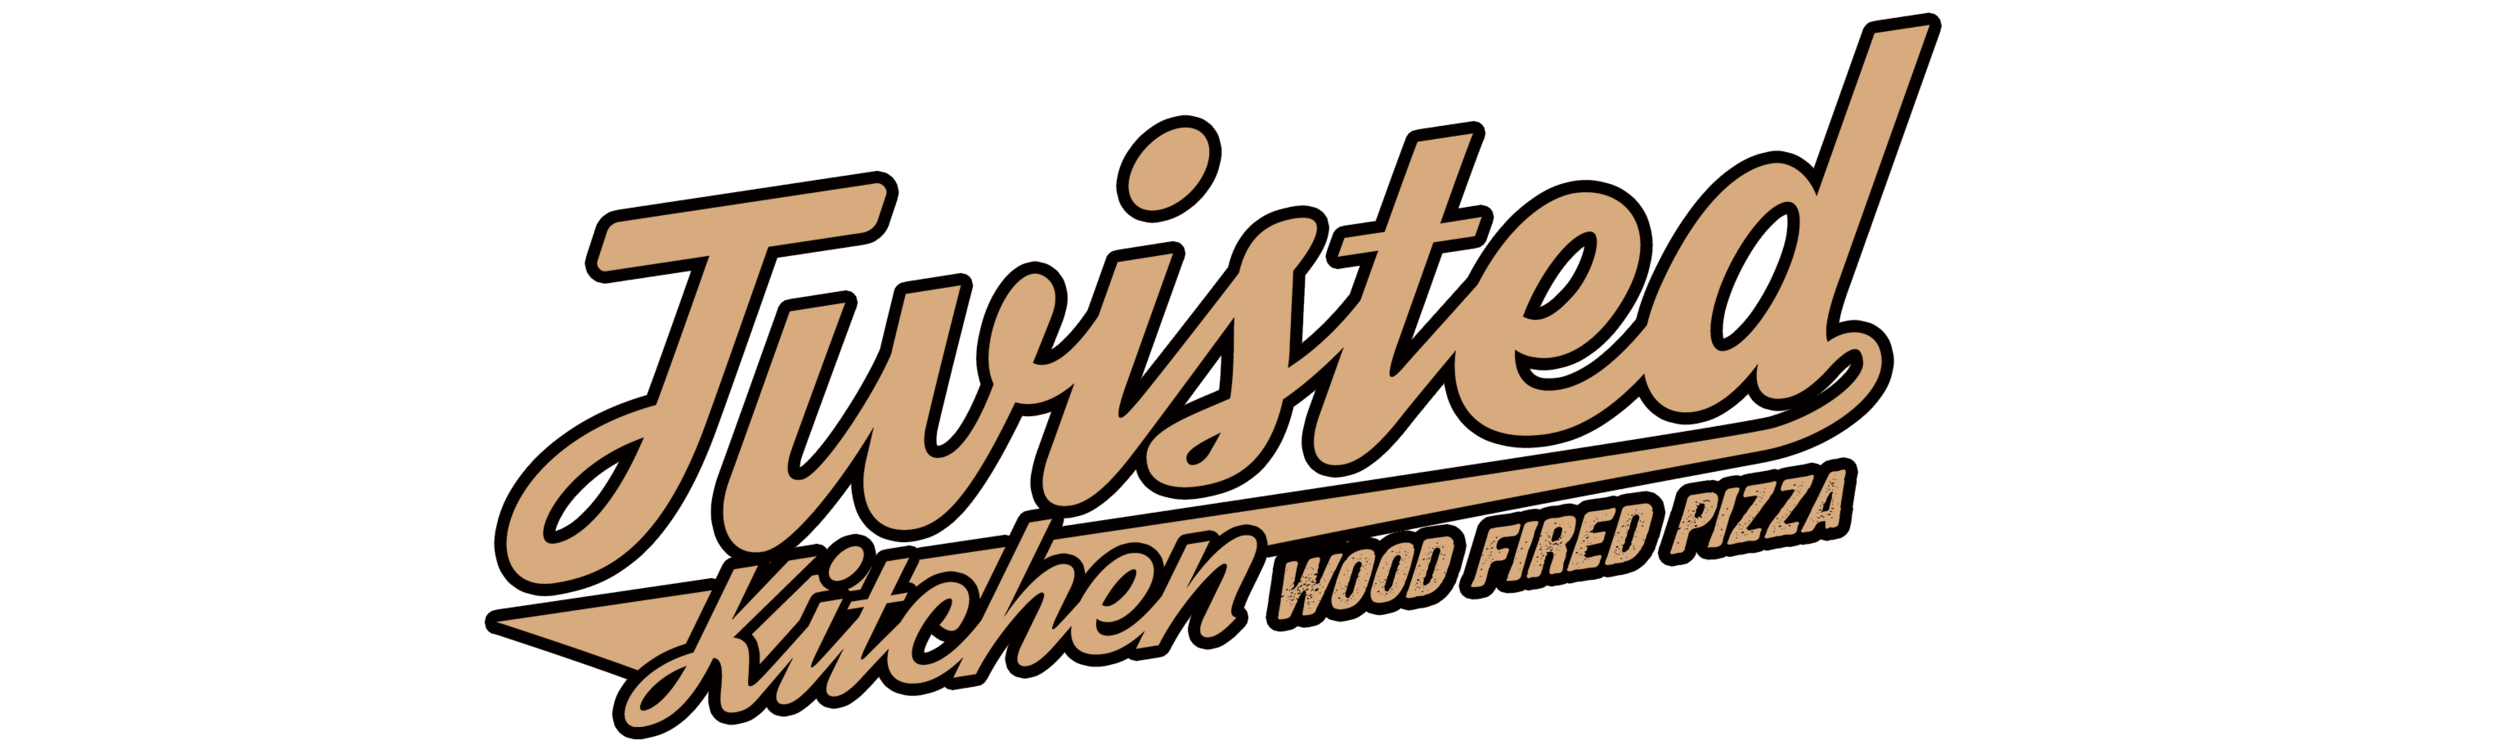 Twisted Kitchen logo .png